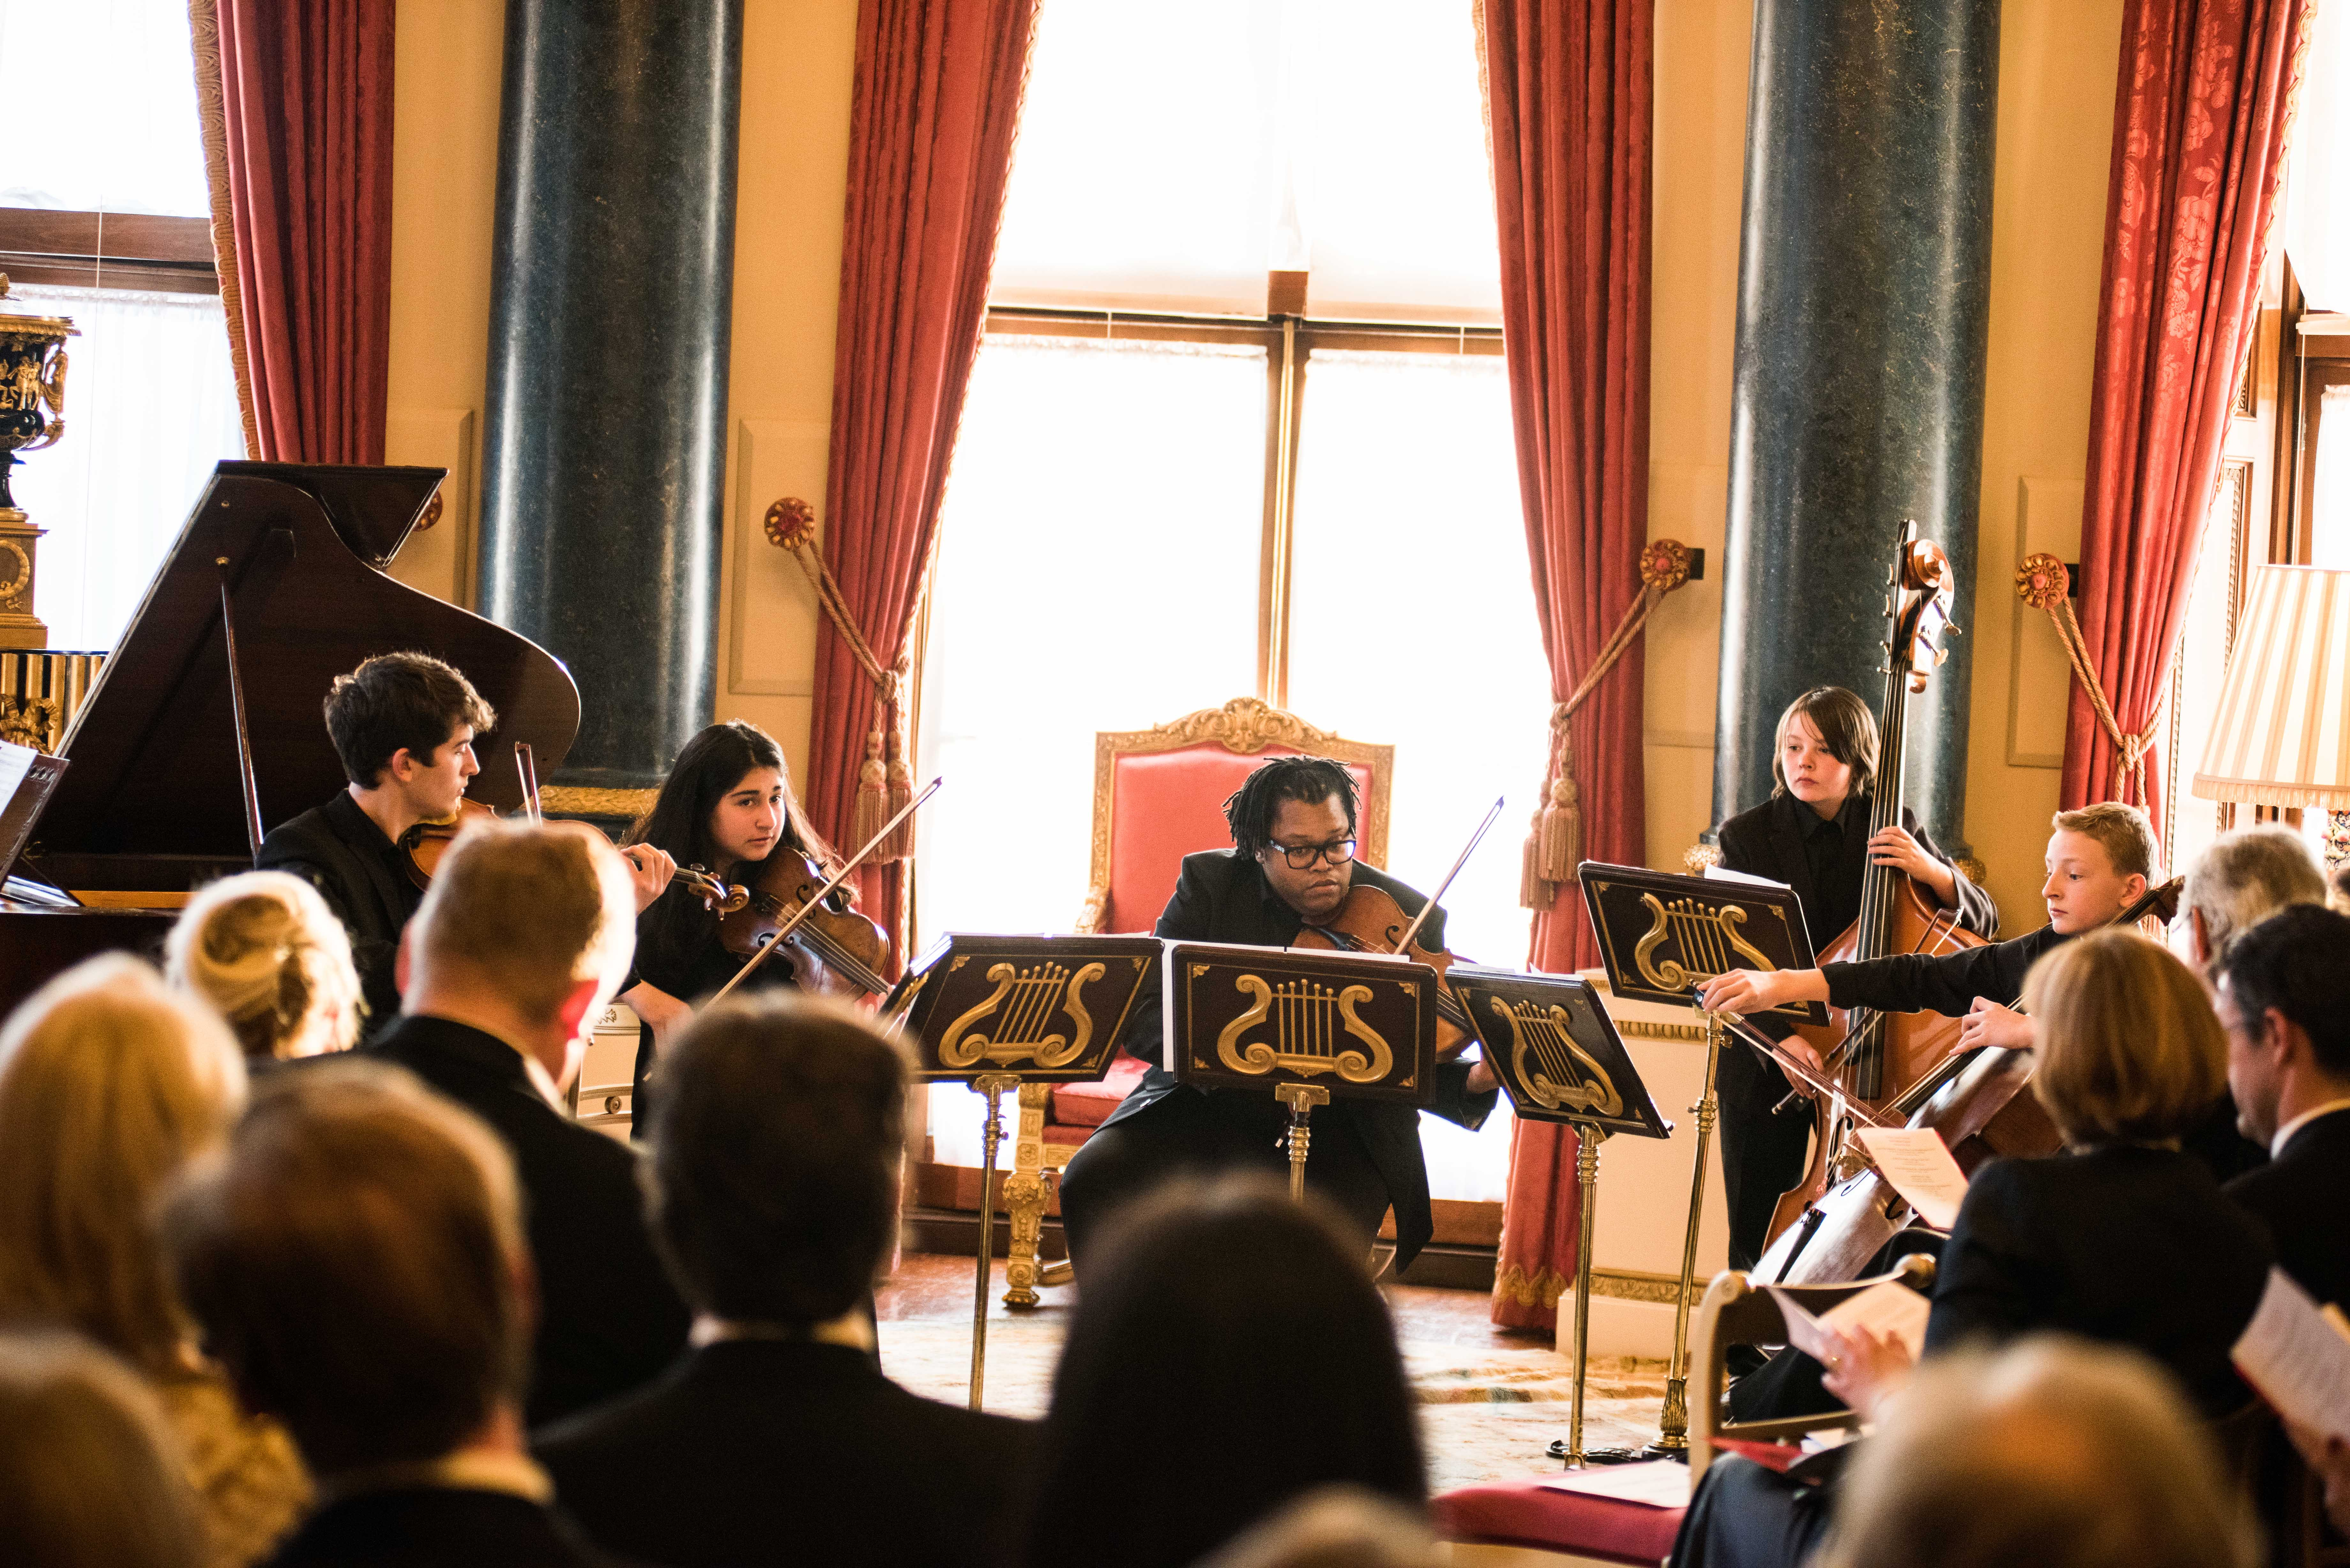 The string quintet performing